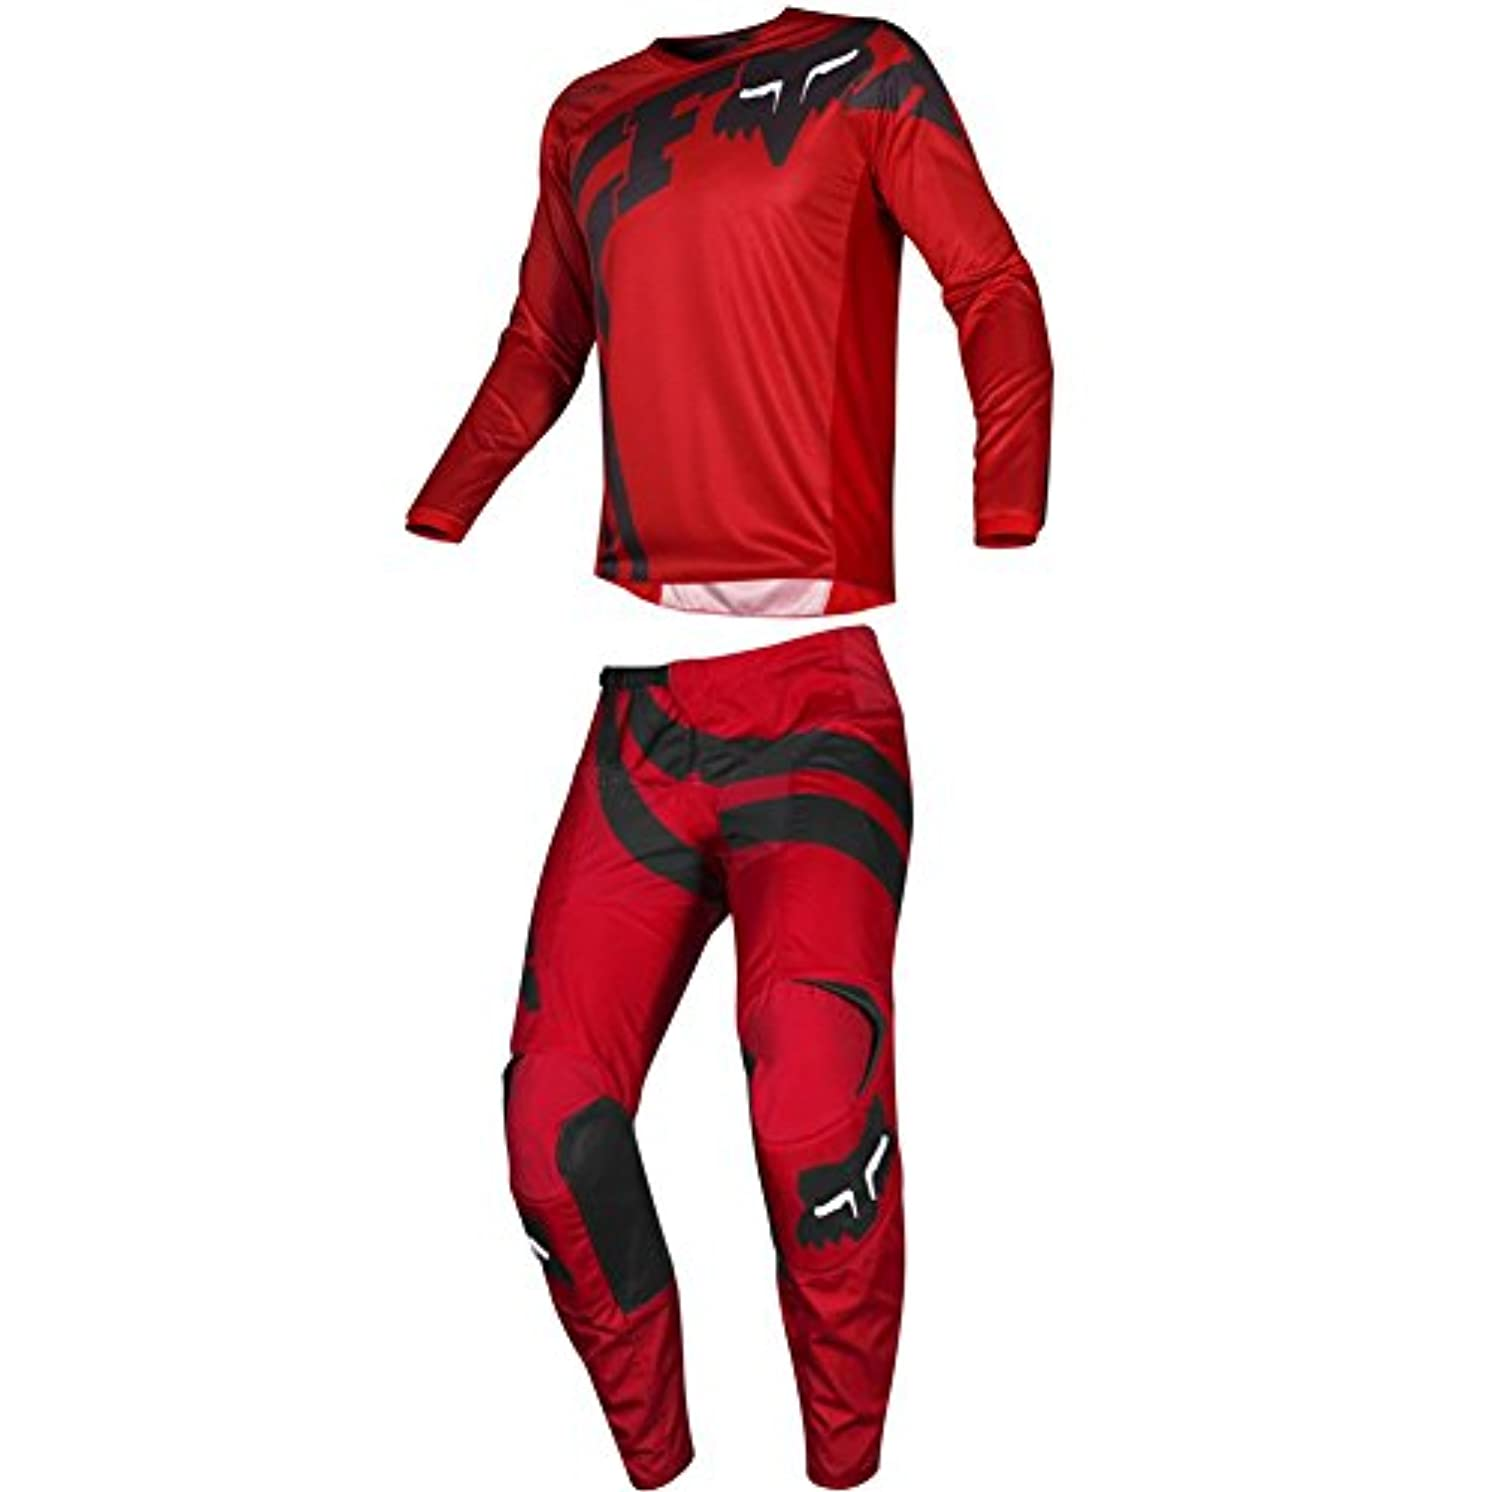 Fox Racing 2019 180 COTA Jersey and Pants Combo Offroad Gear Set Adult Mens Red Large Jersey/Pants 36W